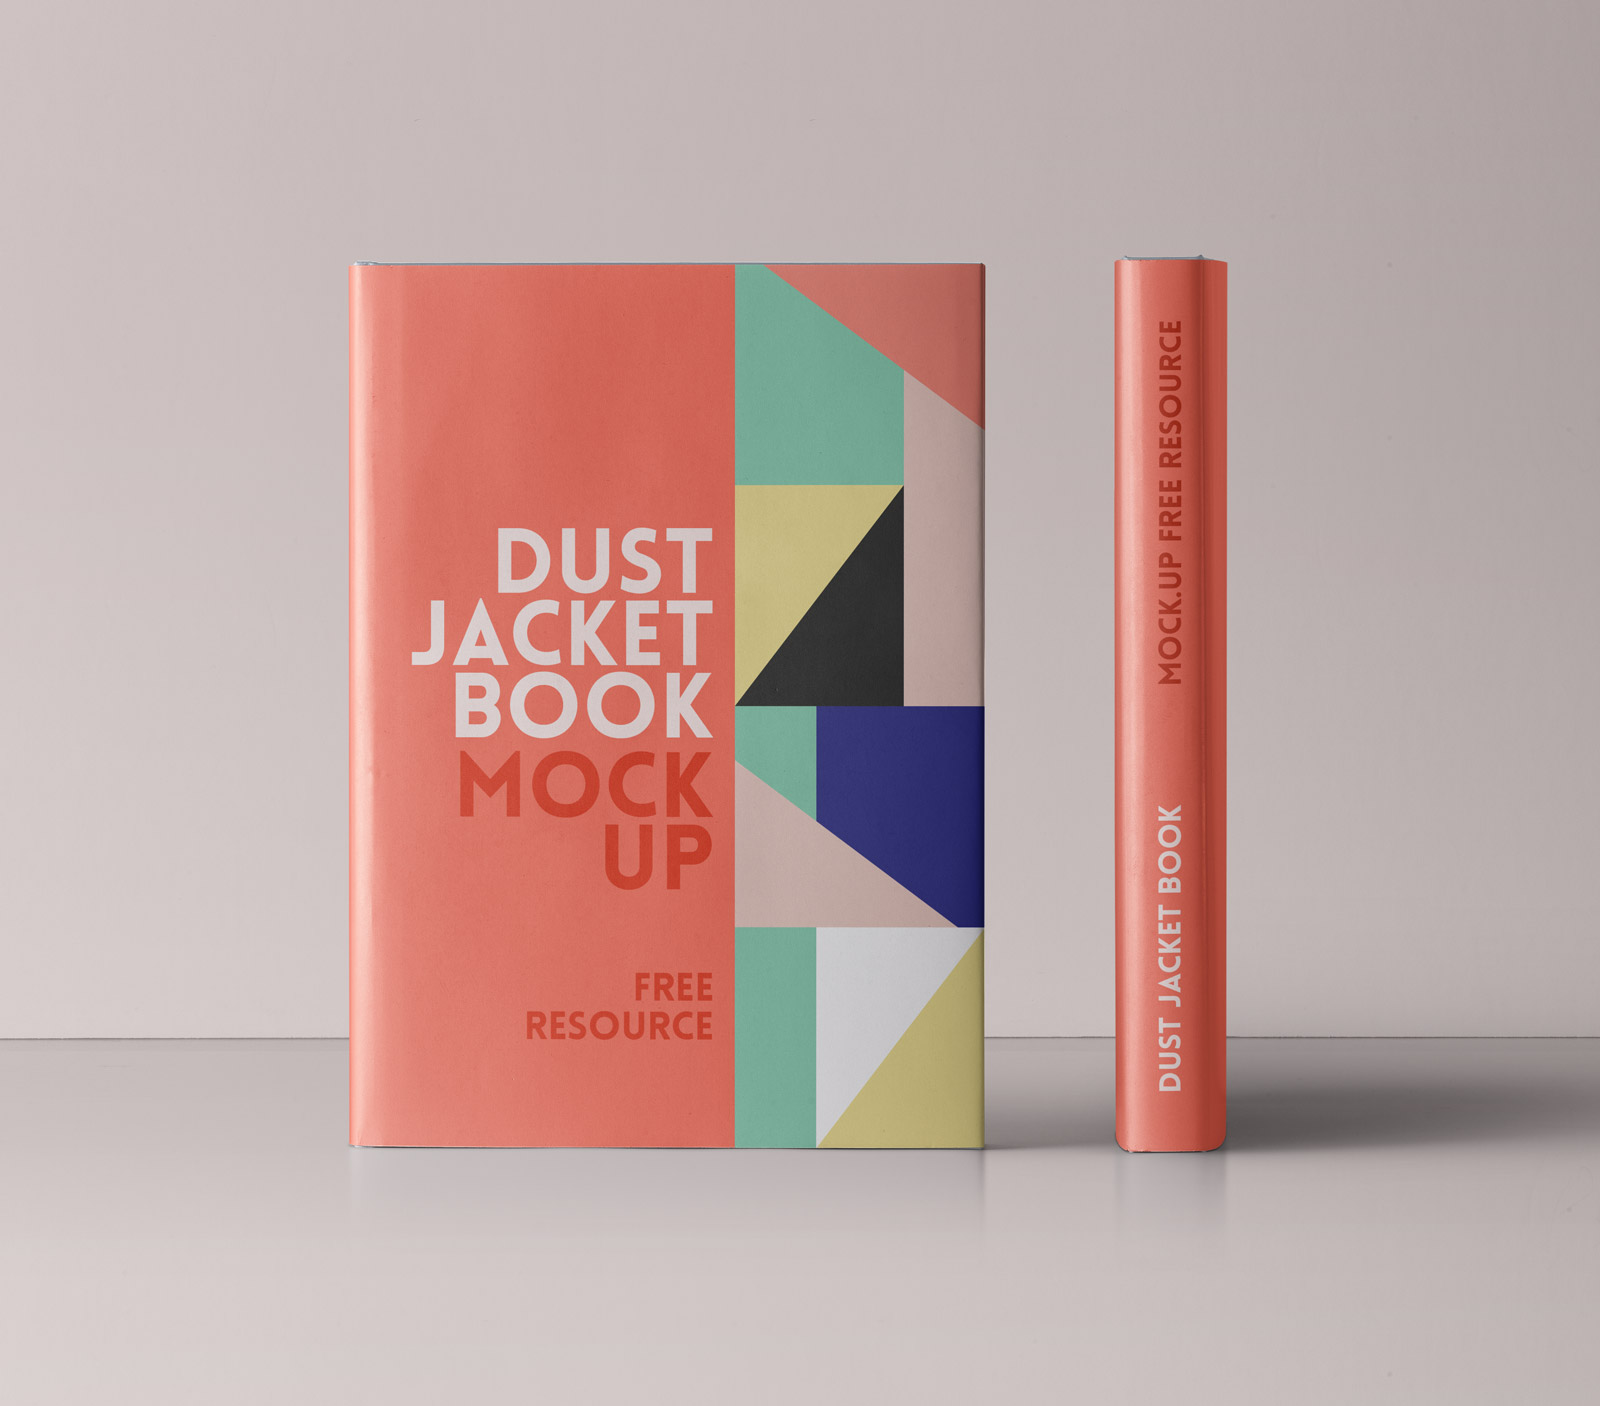 Mockup Report Psd Free Title & Spine Of Book Mockup Psd - Good Mockups